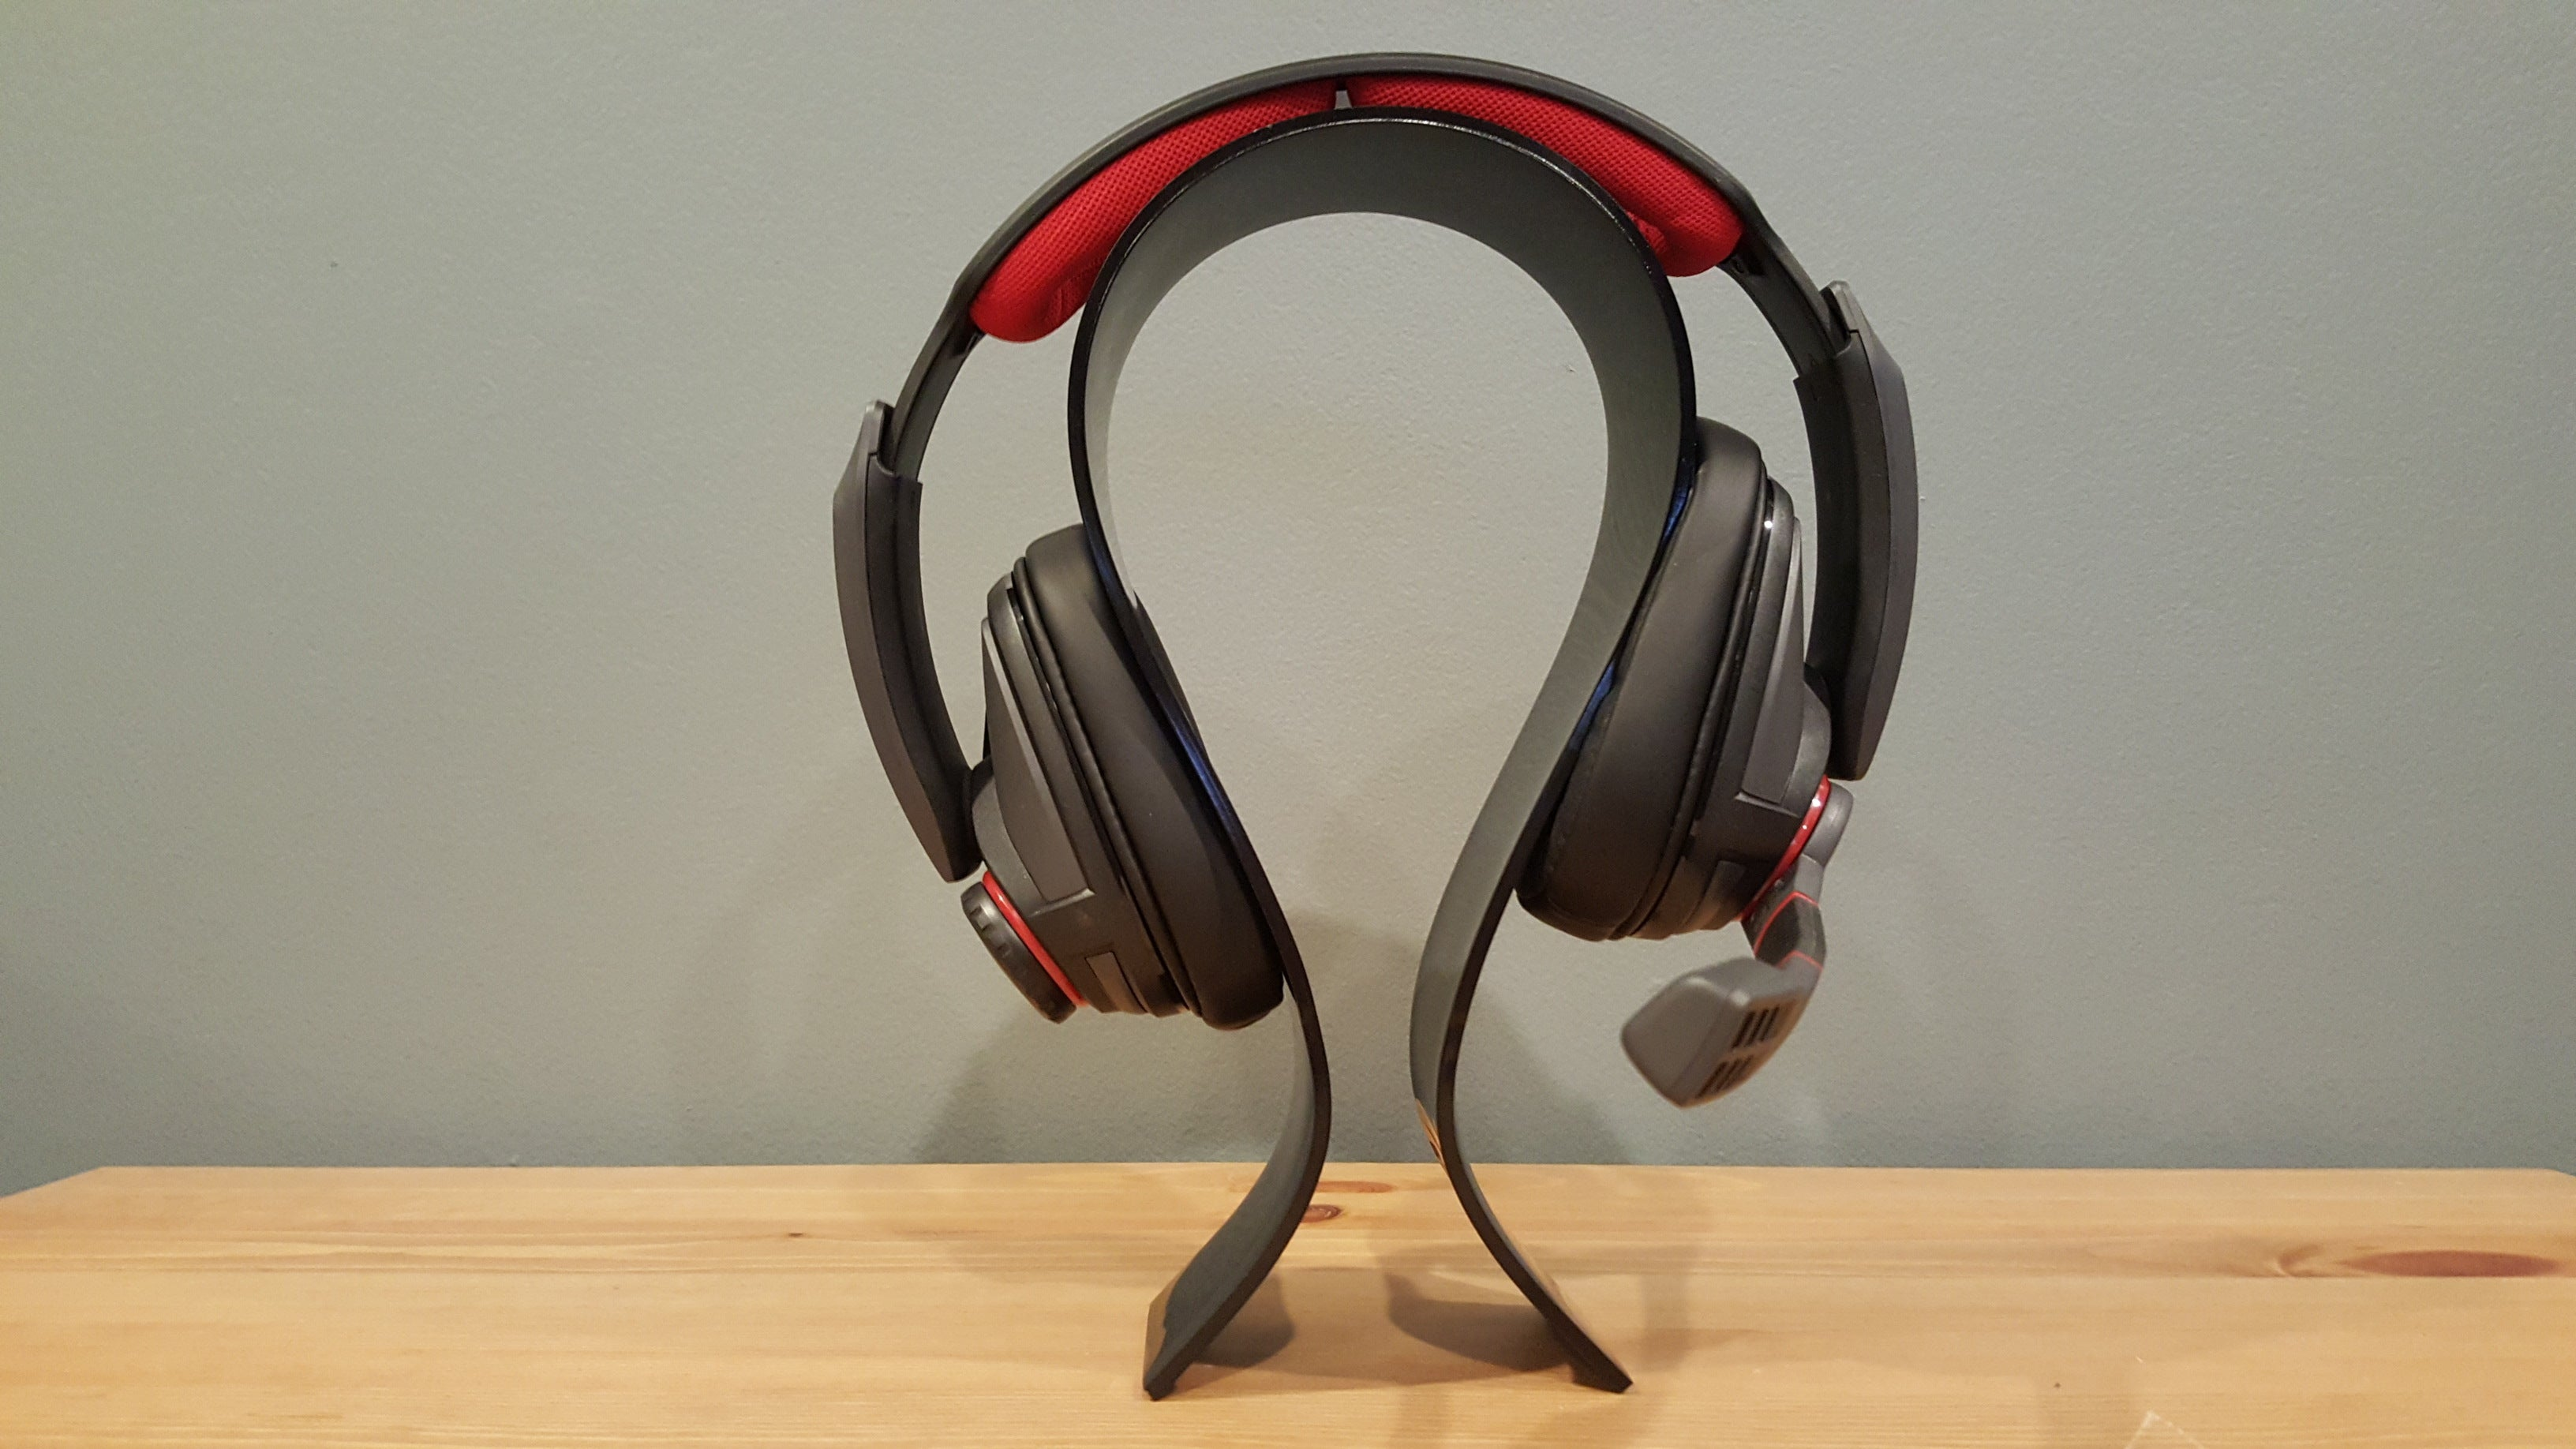 ca68c8f6e66 Sennheiser GSP 350 review: A gaming headset that sounds a lot better ...